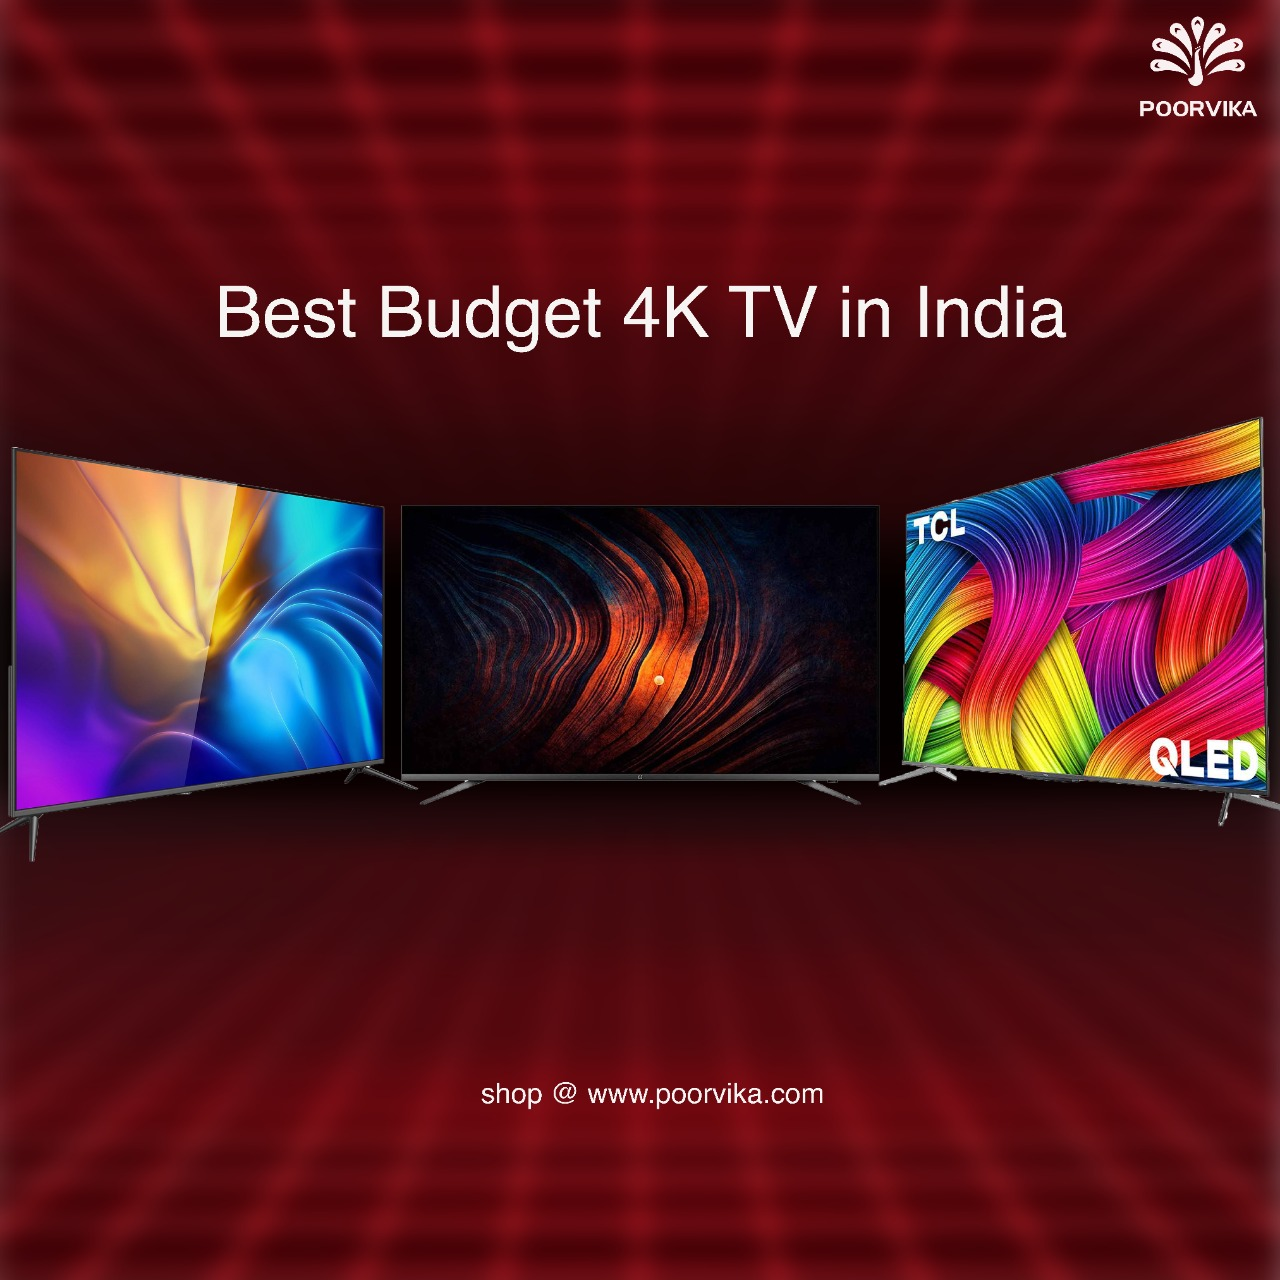 The-6-Best-Budget-4K-TV-India-2021